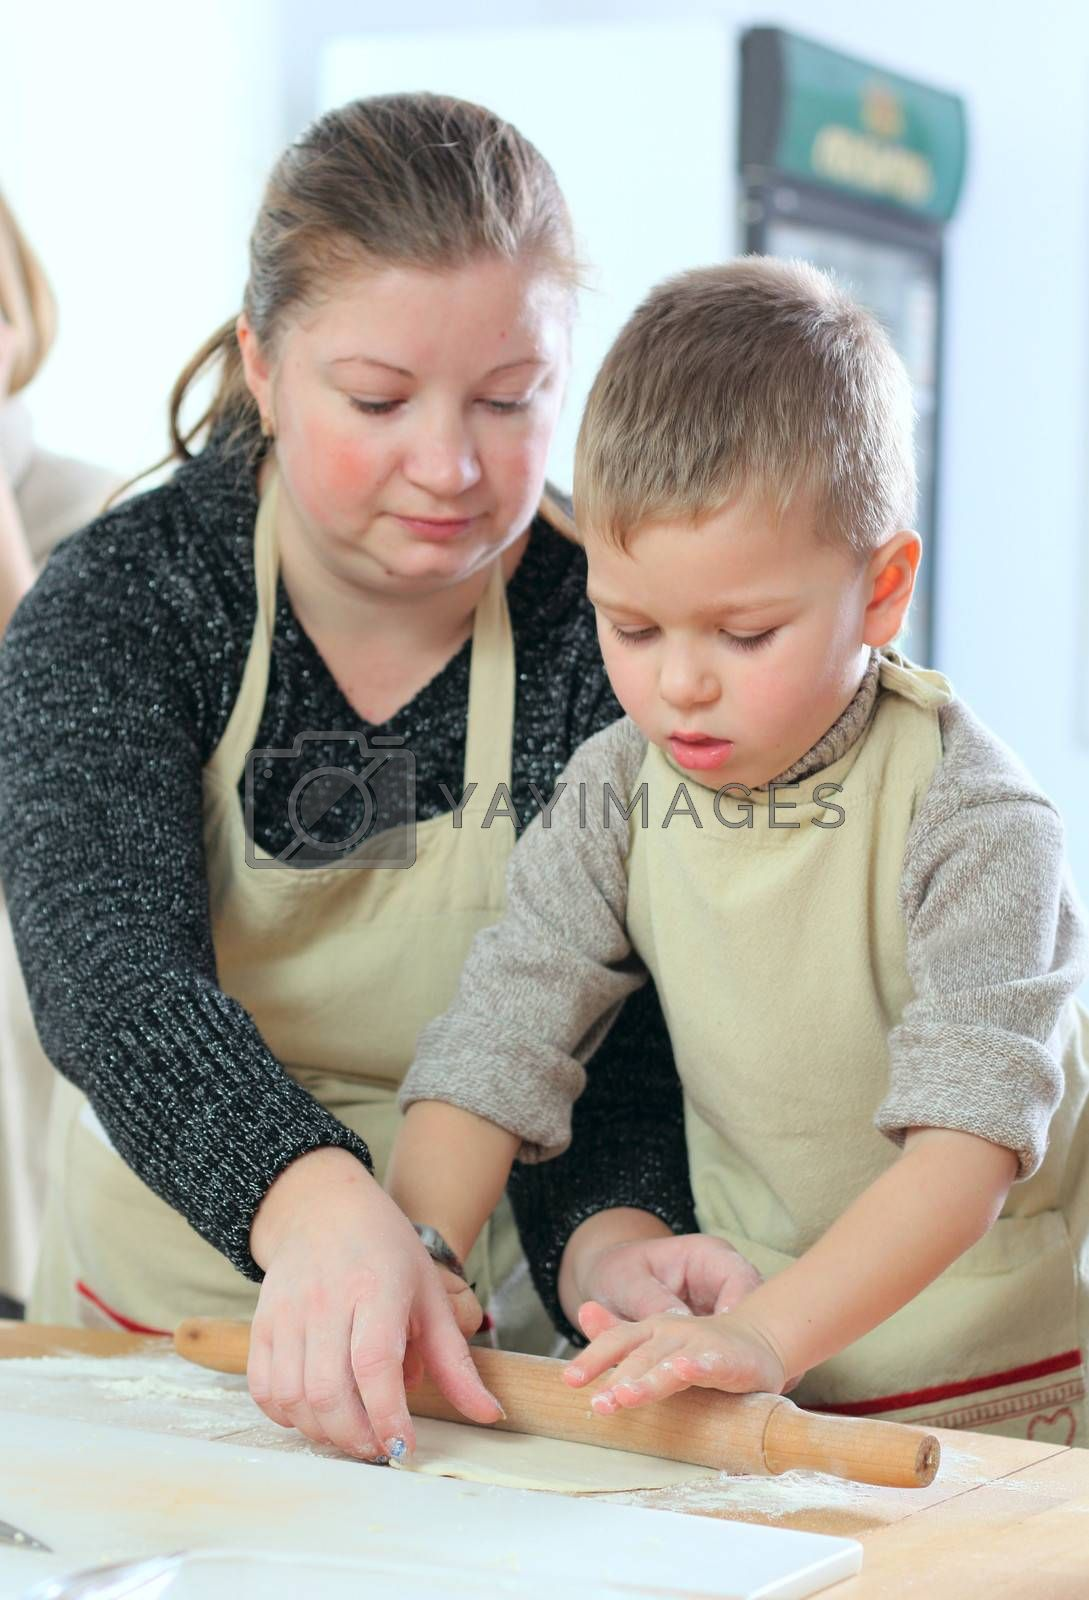 Little boy with his mother cooking at the kitchen